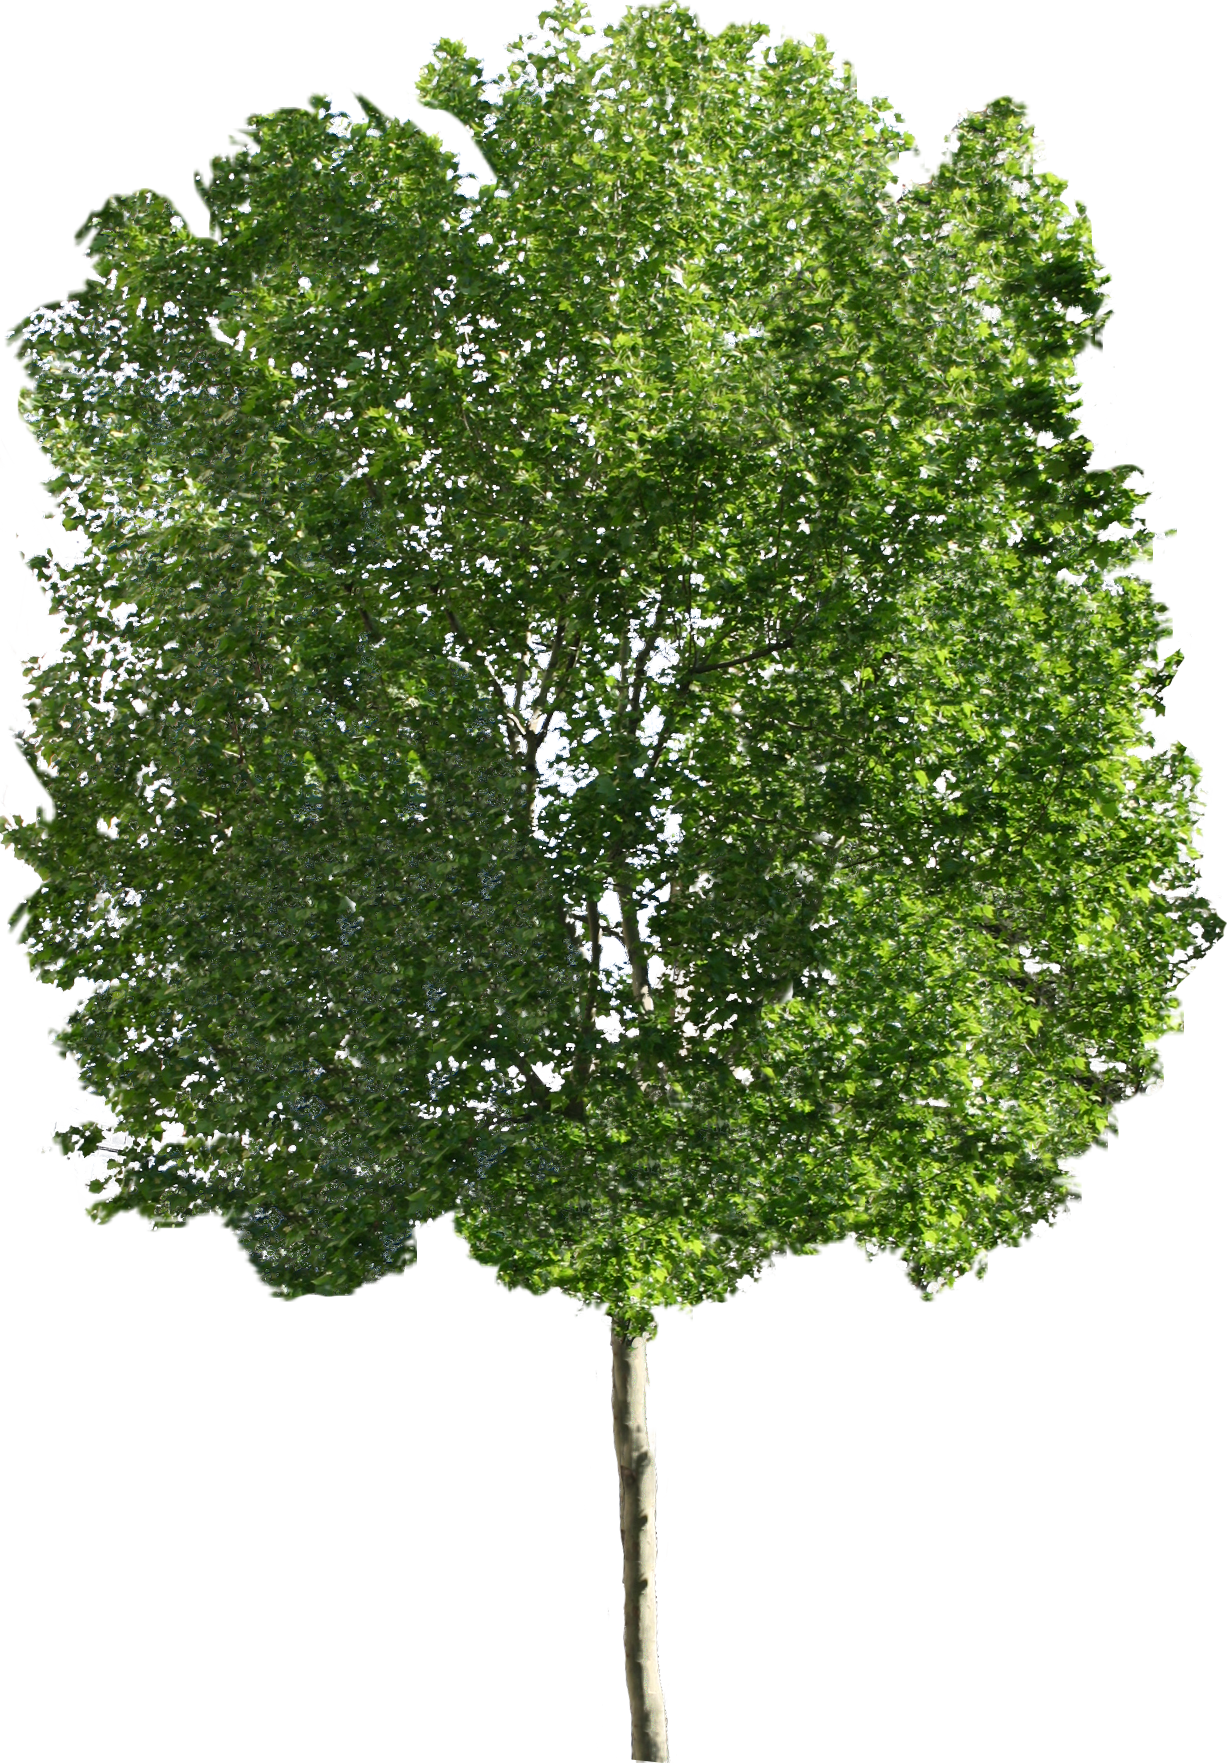 PNG HD Images Of Trees - 126439